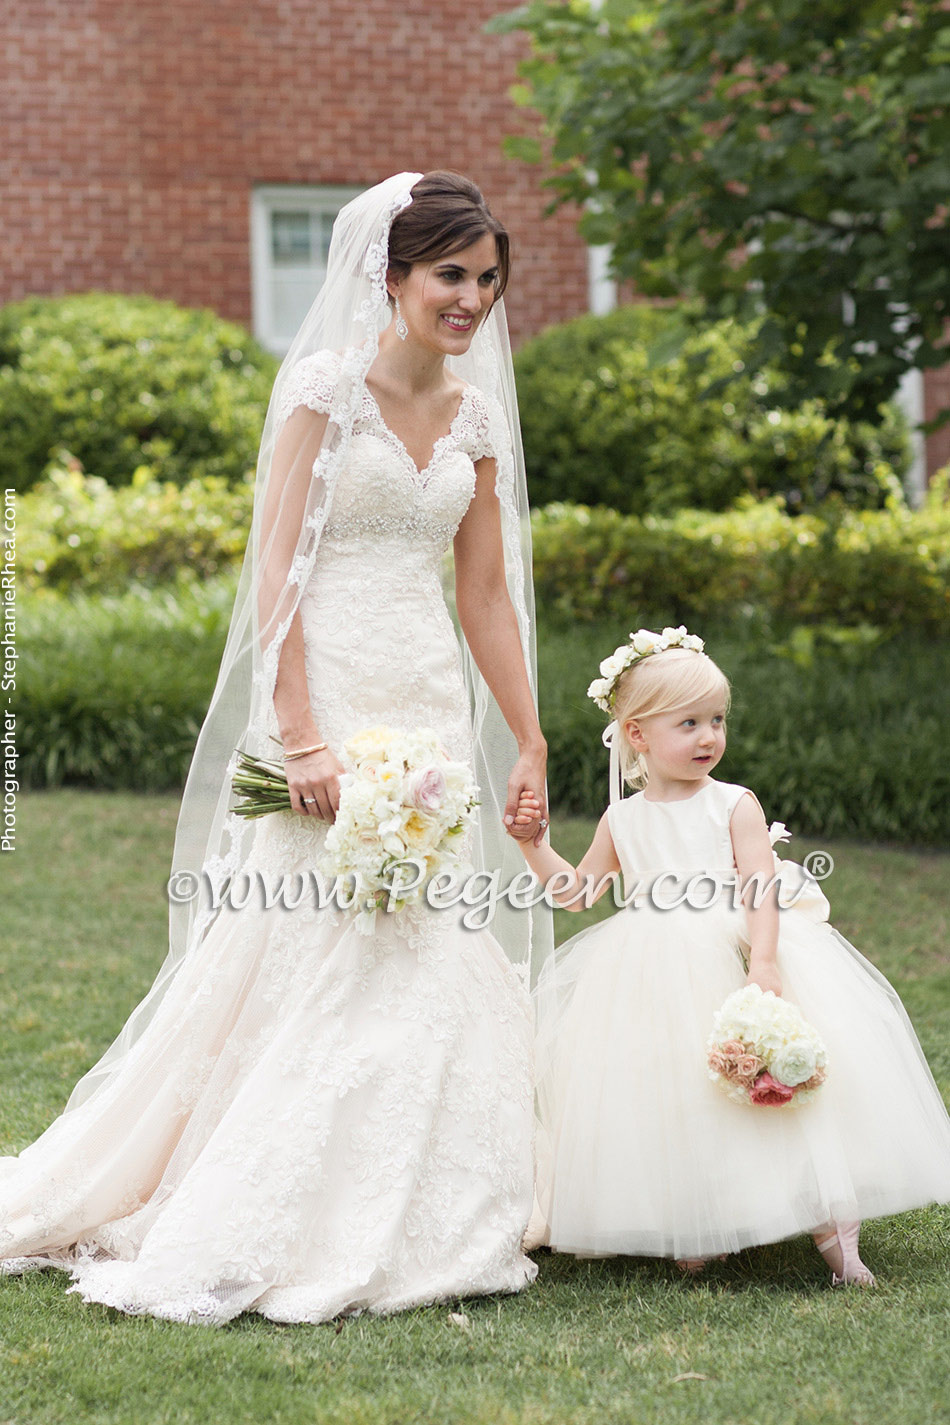 2014 southern wedding flower girl dresses of the year pegeen. Black Bedroom Furniture Sets. Home Design Ideas